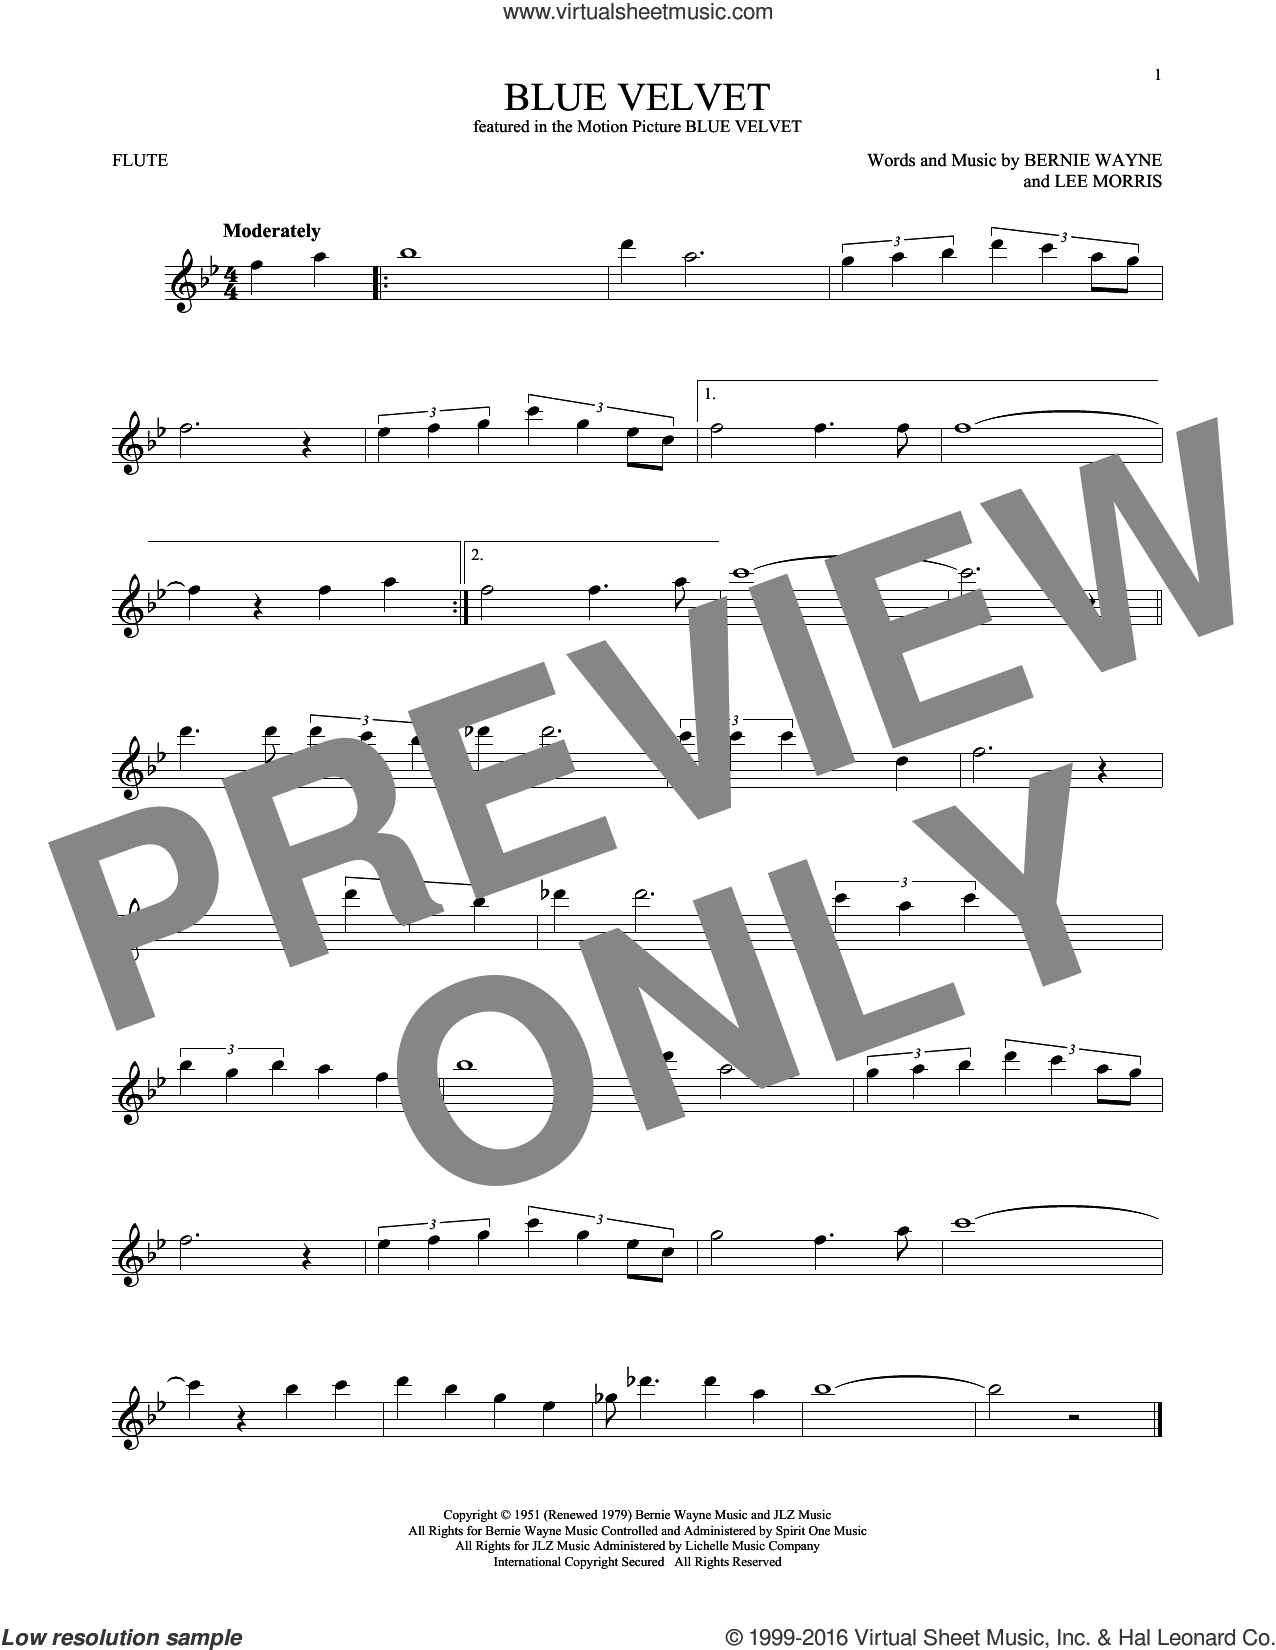 Blue Velvet sheet music for flute solo by Bobby Vinton, Statues, Bernie Wayne and Lee Morris, intermediate skill level